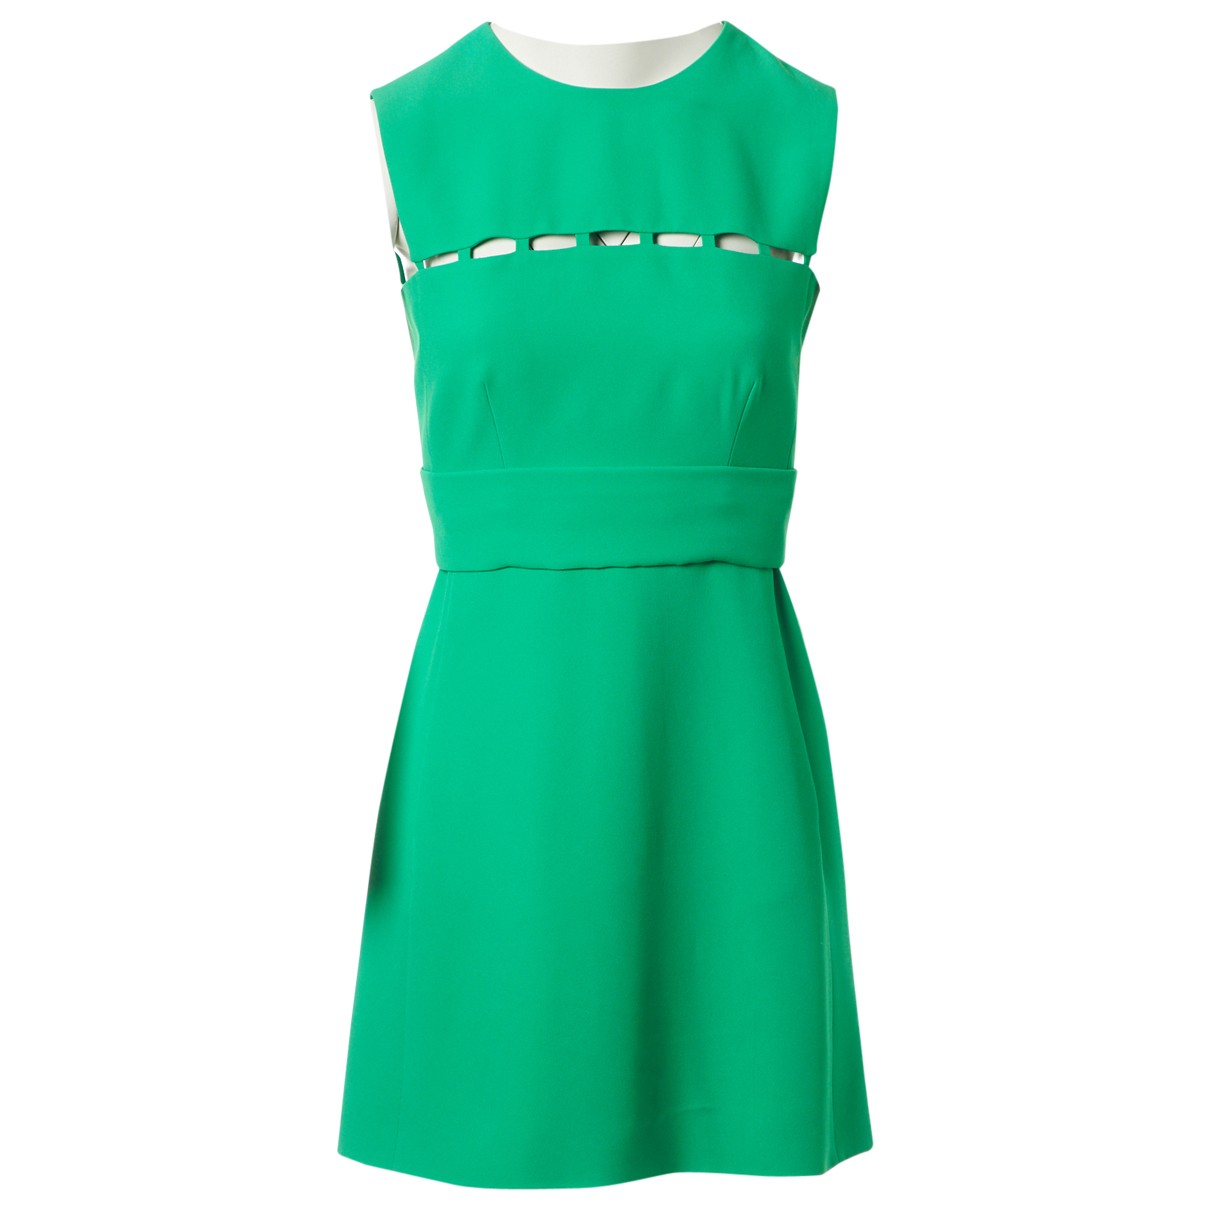 Emilio Pucci \N Green dress for Women 38 IT